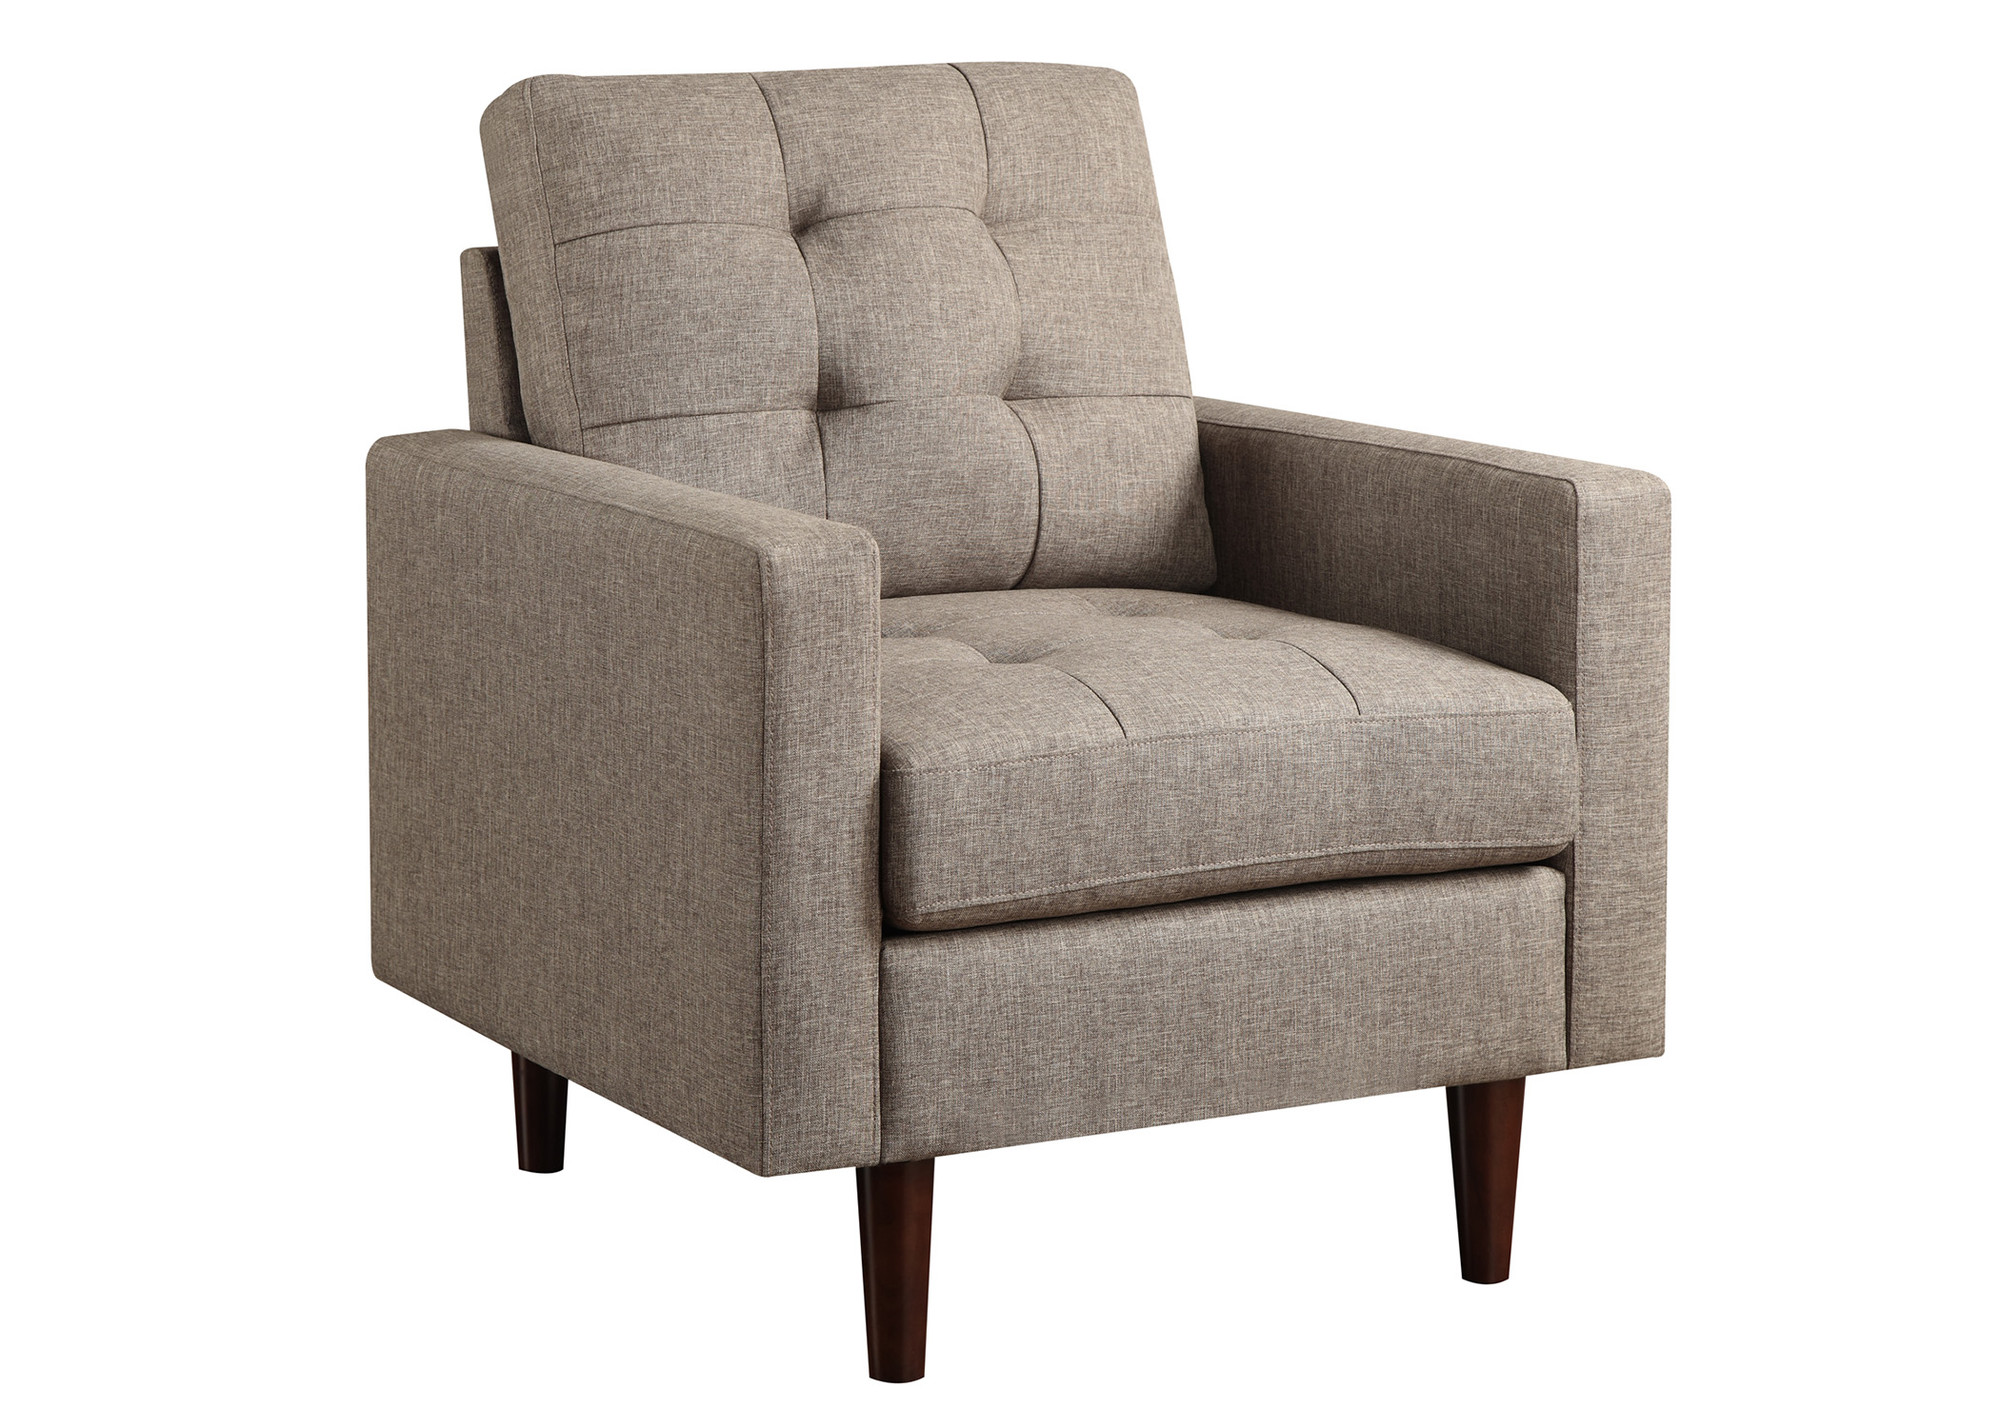 Crate and barrel petrie chair decor look alikes Crate and barrel living room chairs